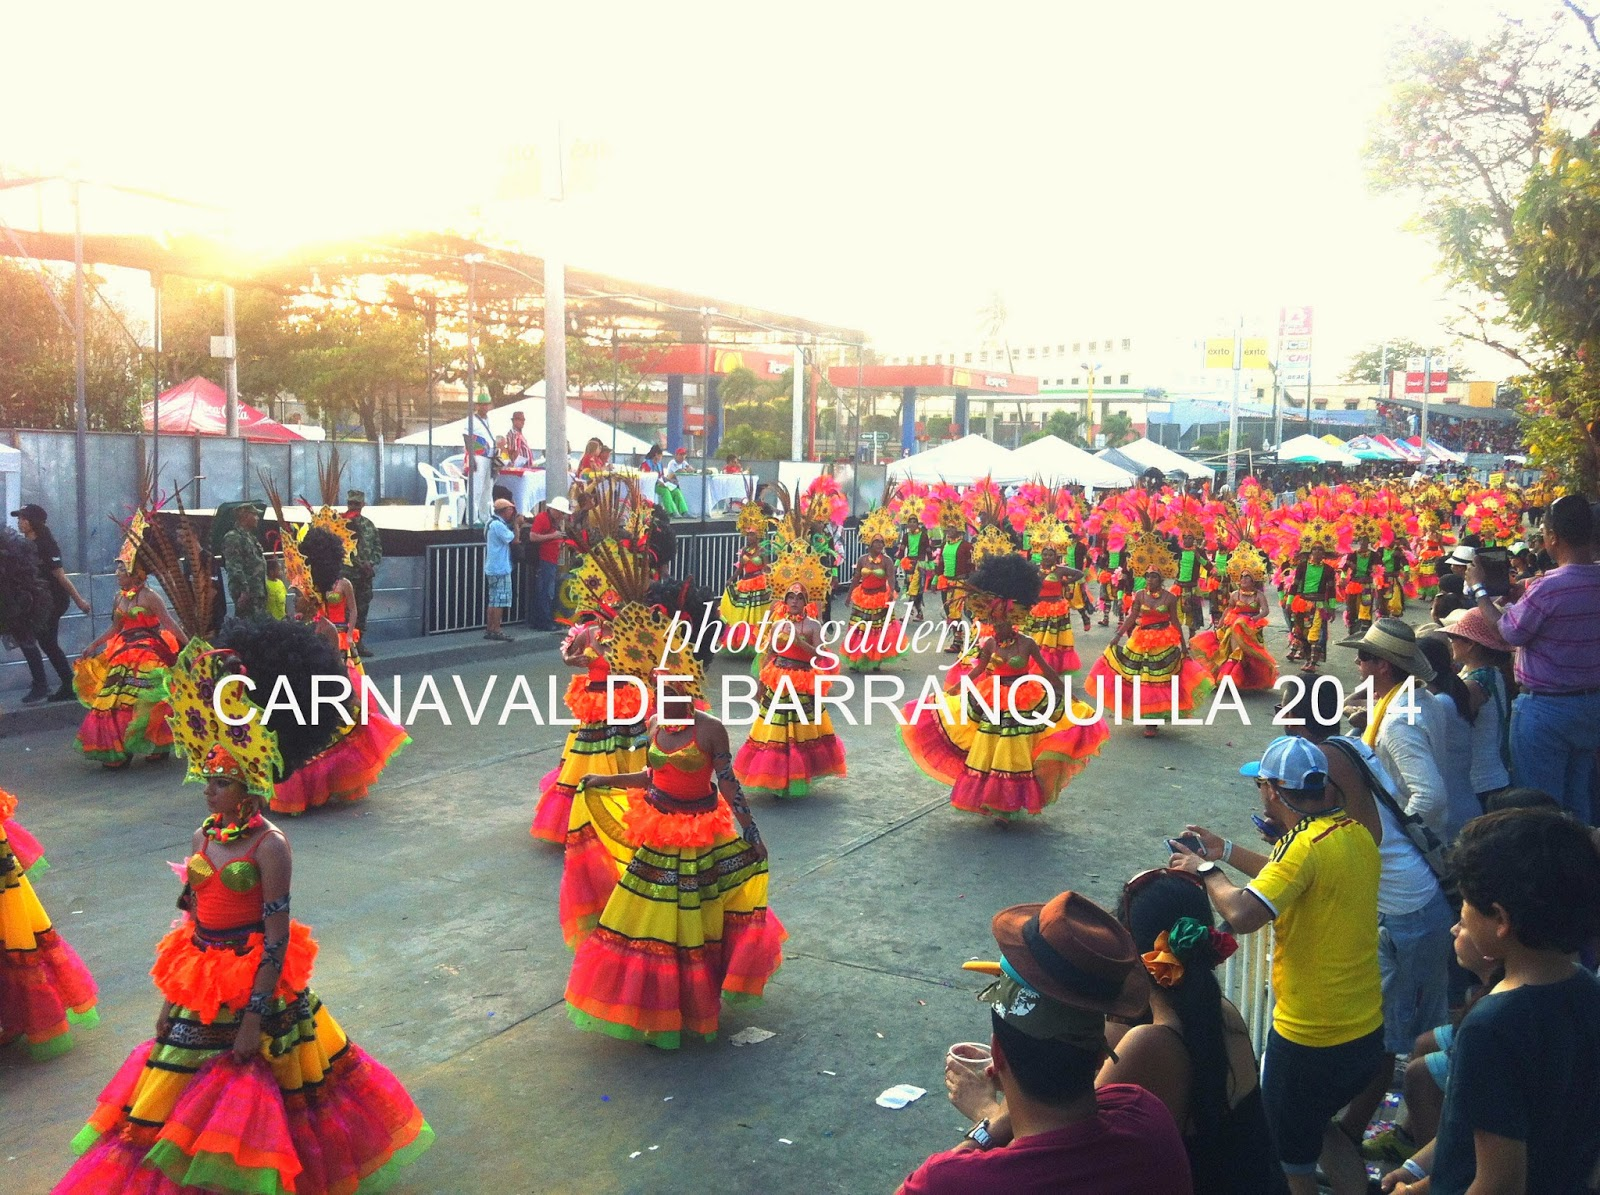 photo essay carnaval de barranquilla p s i m on my way dream come true the main purpose of my and extension in is to witness the beauty of the second biggest carnival in south america